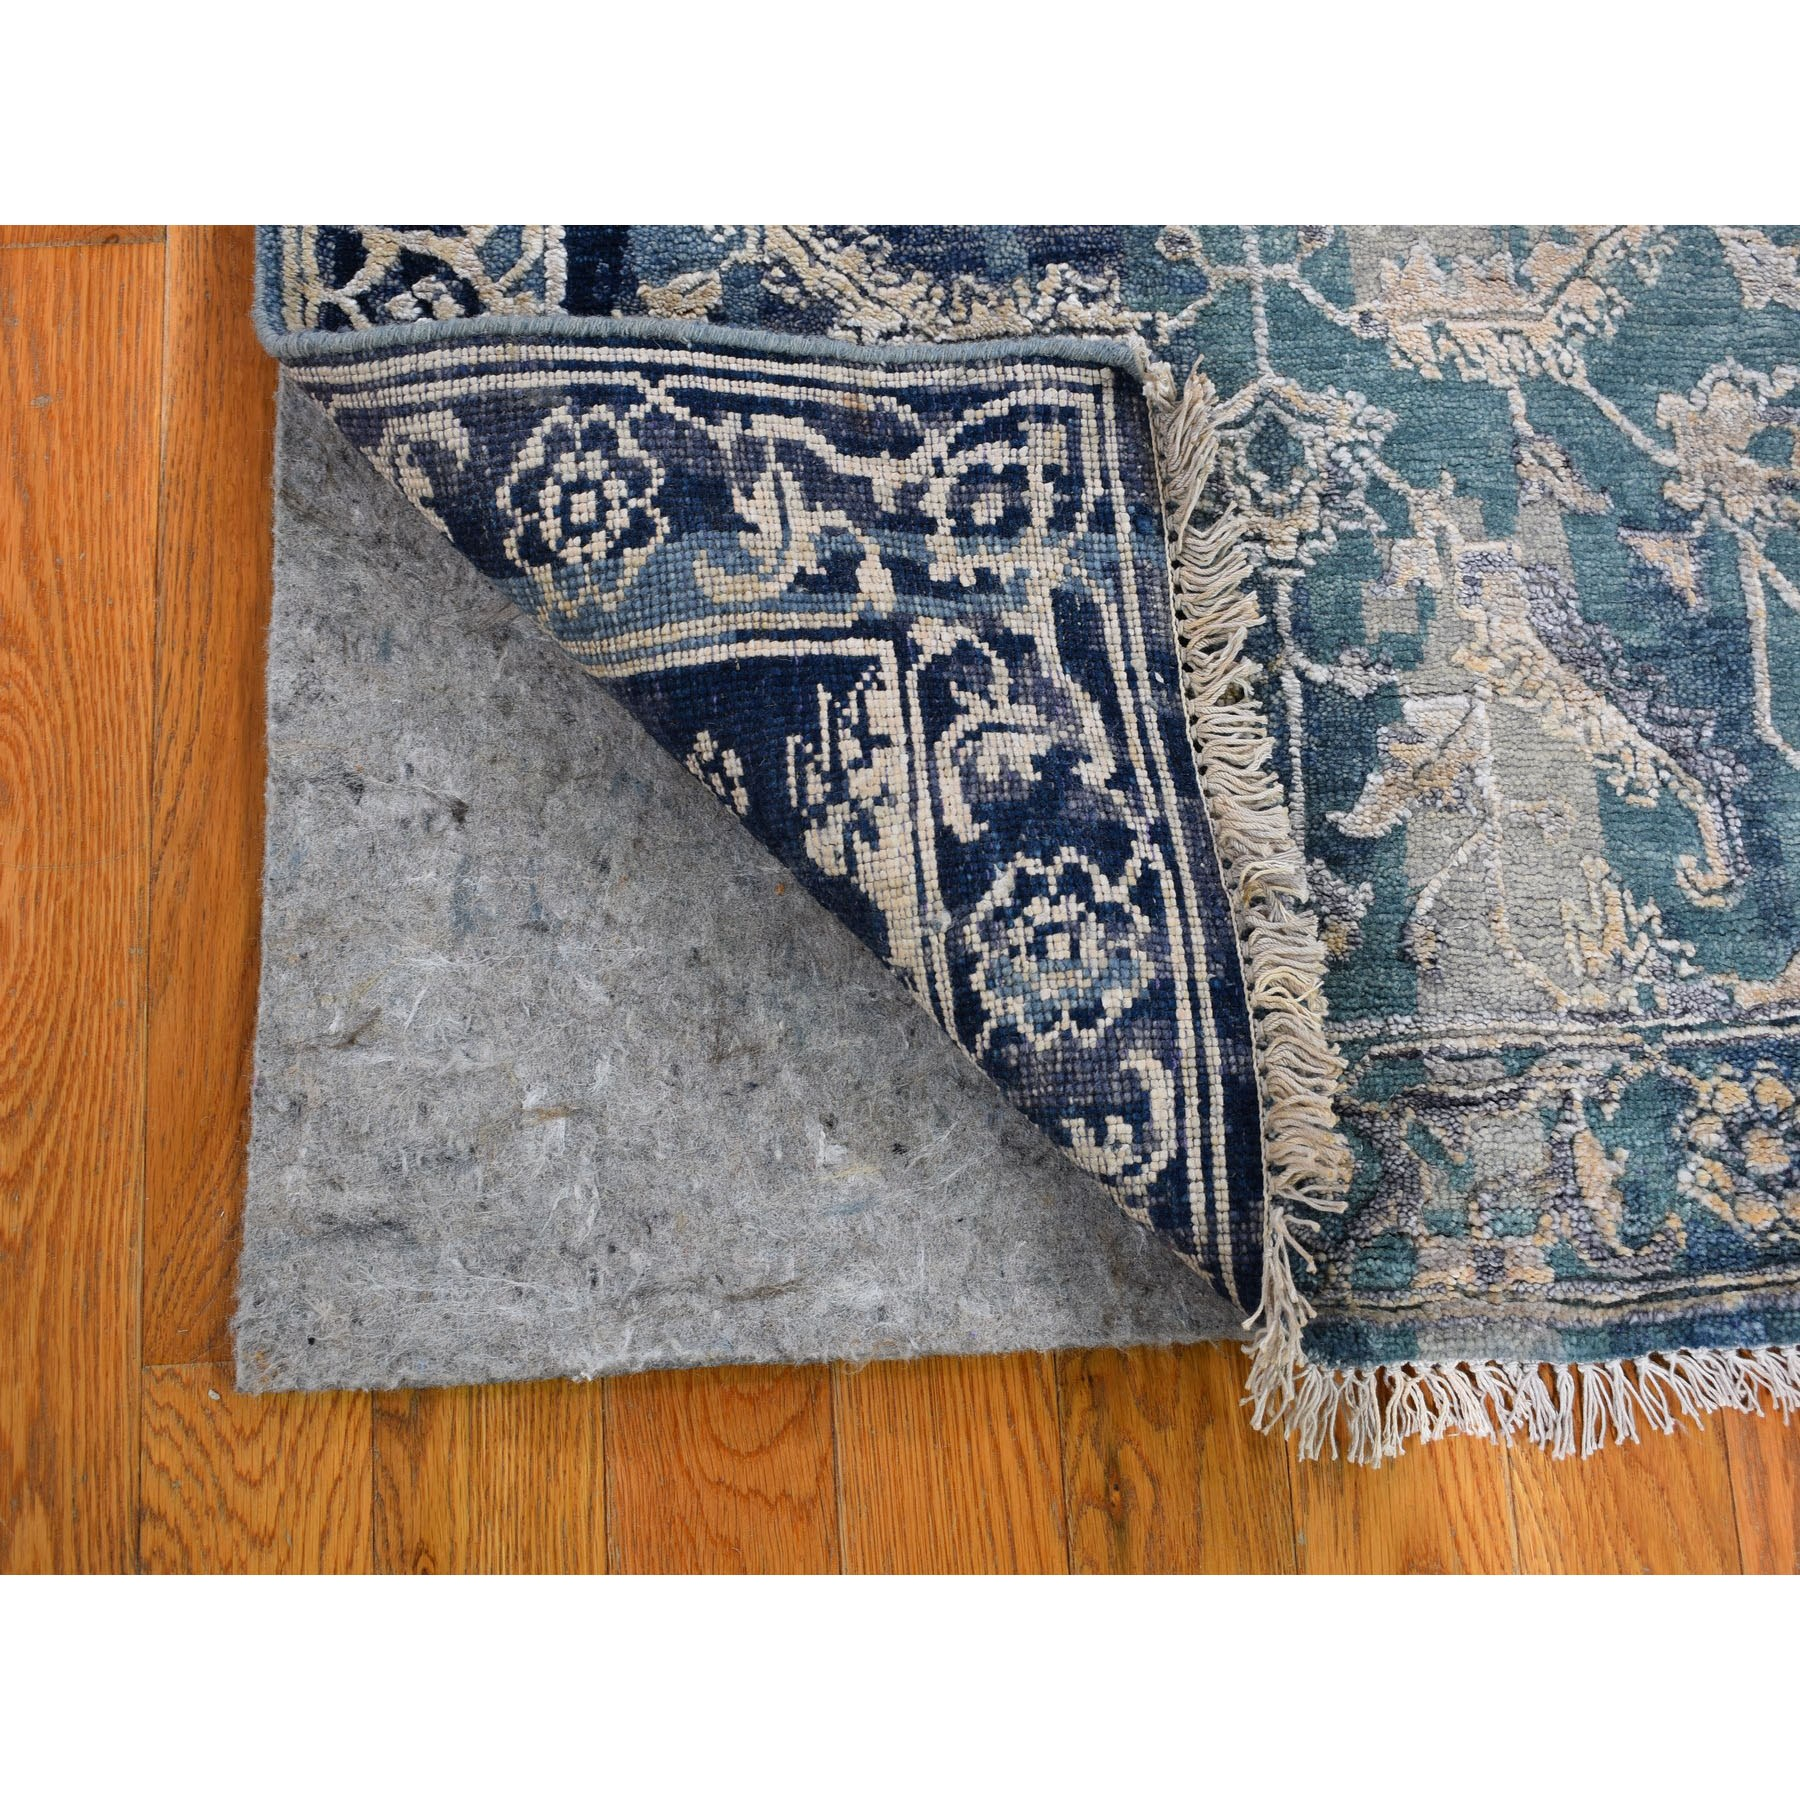 2-7 x24- Broken Persian Heriz All Over Design Wool And Silk Hand Knotted XL Runner Oriental Rug